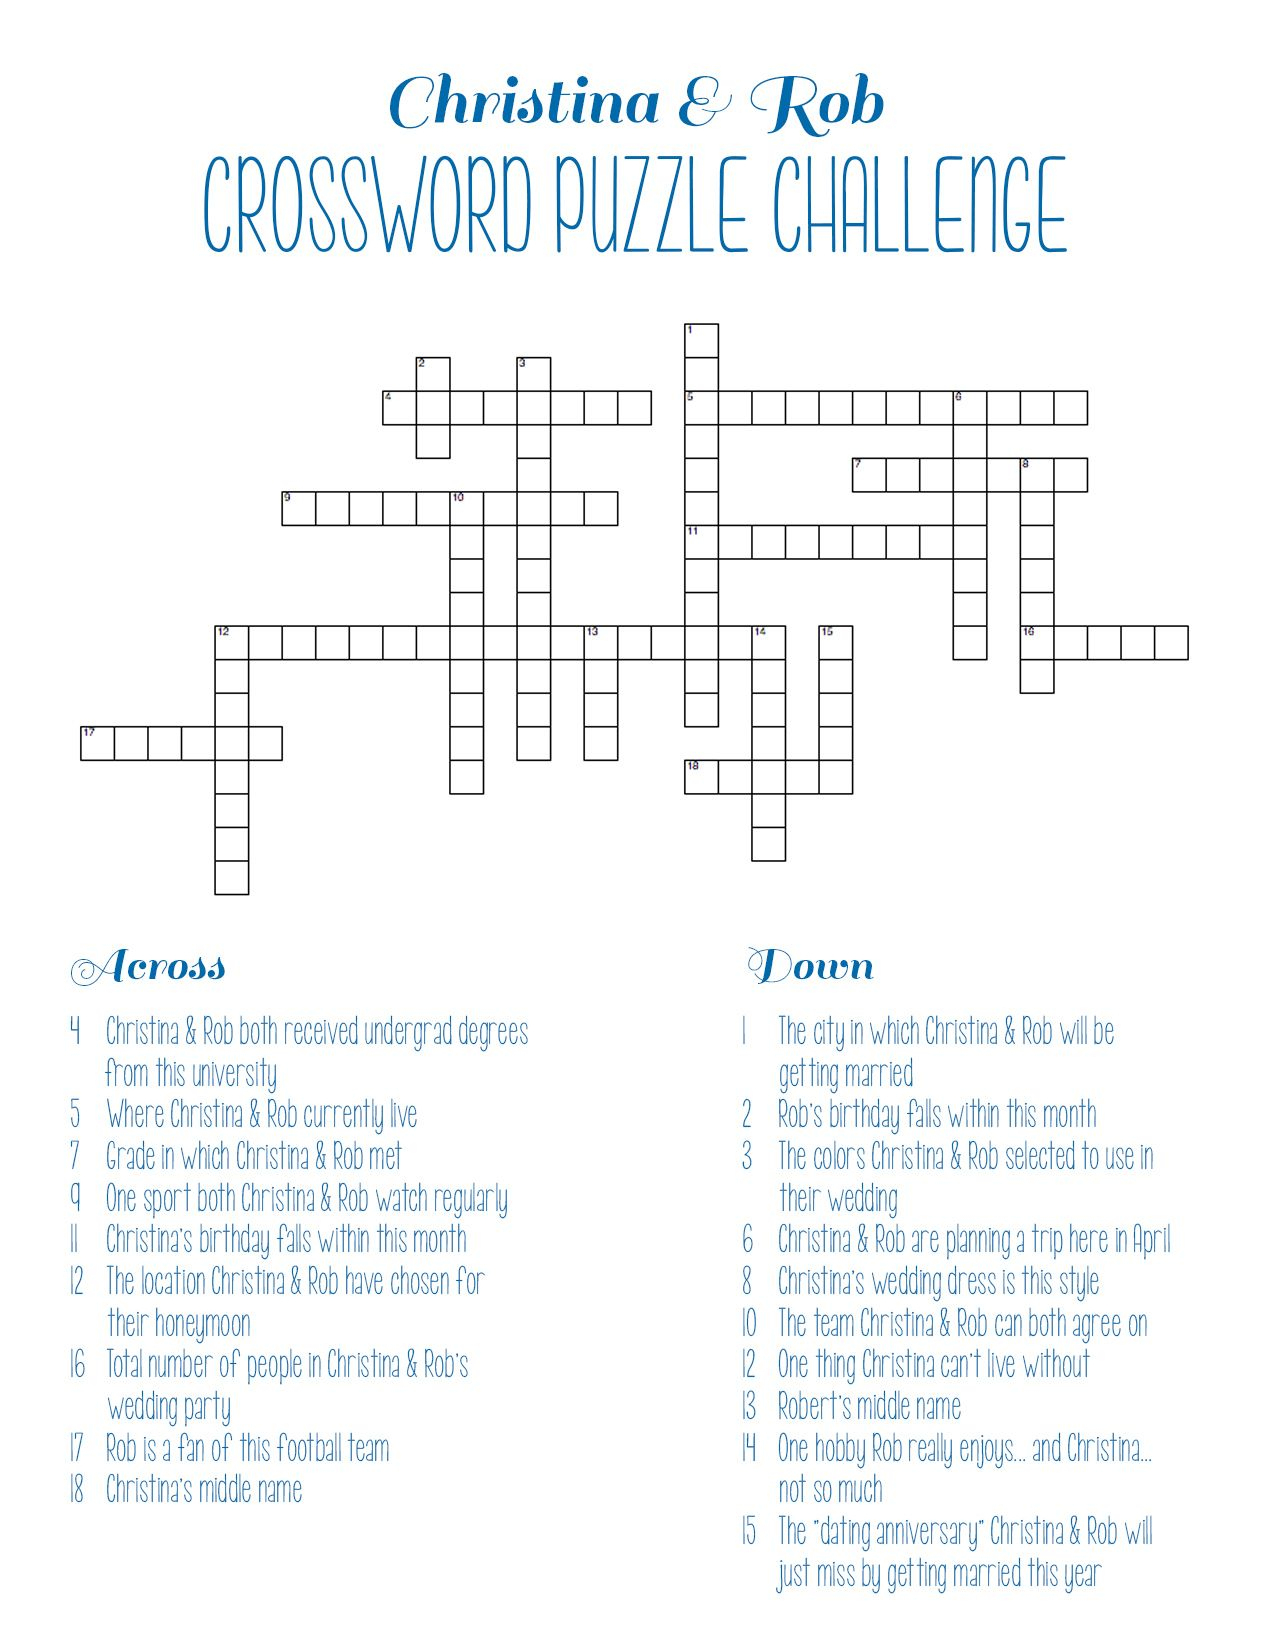 Personalized Bridal Shower Crossword Puzzle | Rehearsal Dinner - Free Printable Bridal Shower Crossword Puzzle